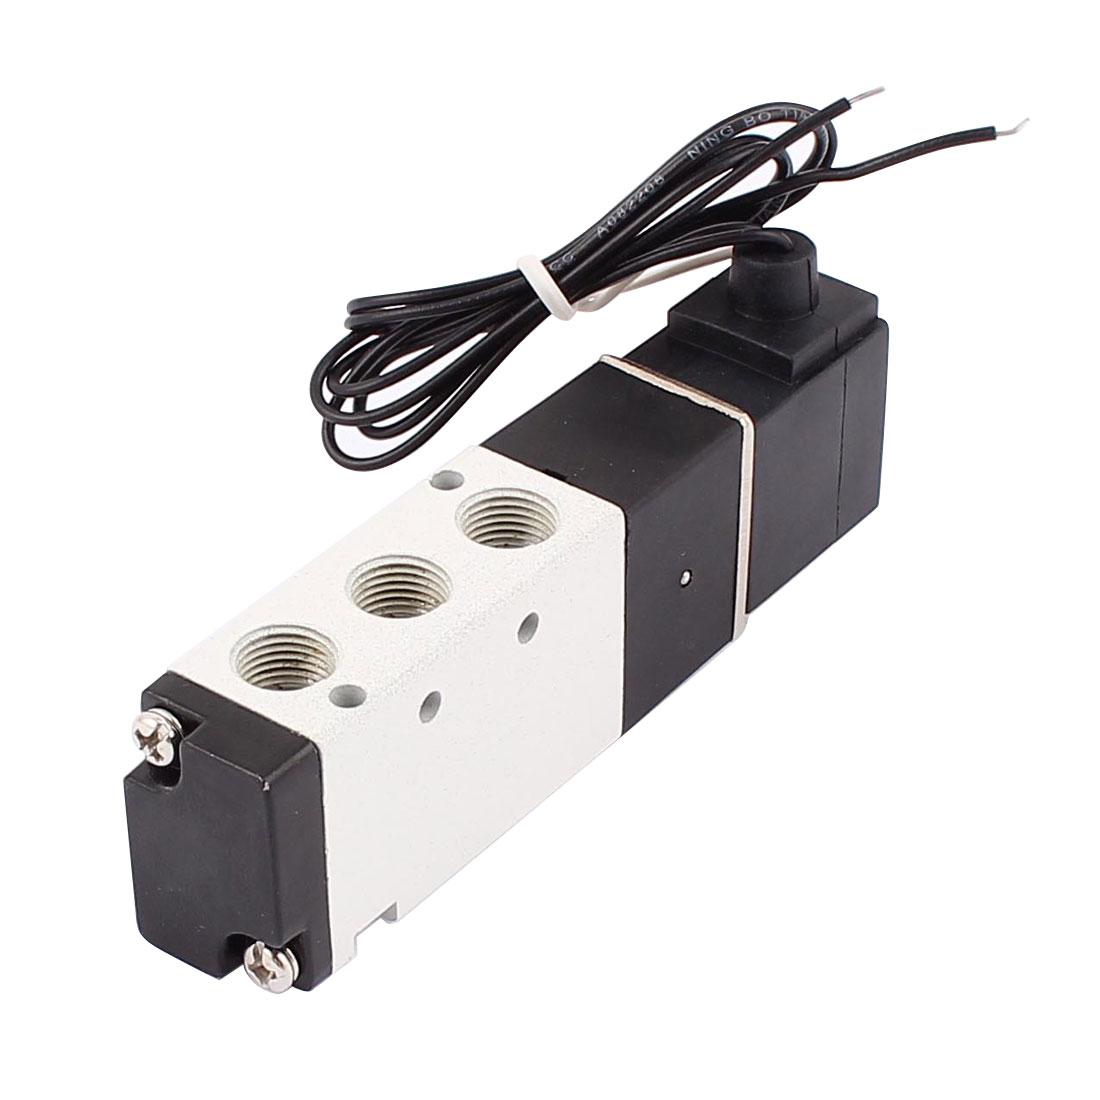 4V110-06 DC 24V 1.5-8Kgf/cm2 5 Way 2 Position 1/8BSP Thread Air Gas Pneumatic Solenoid Valve